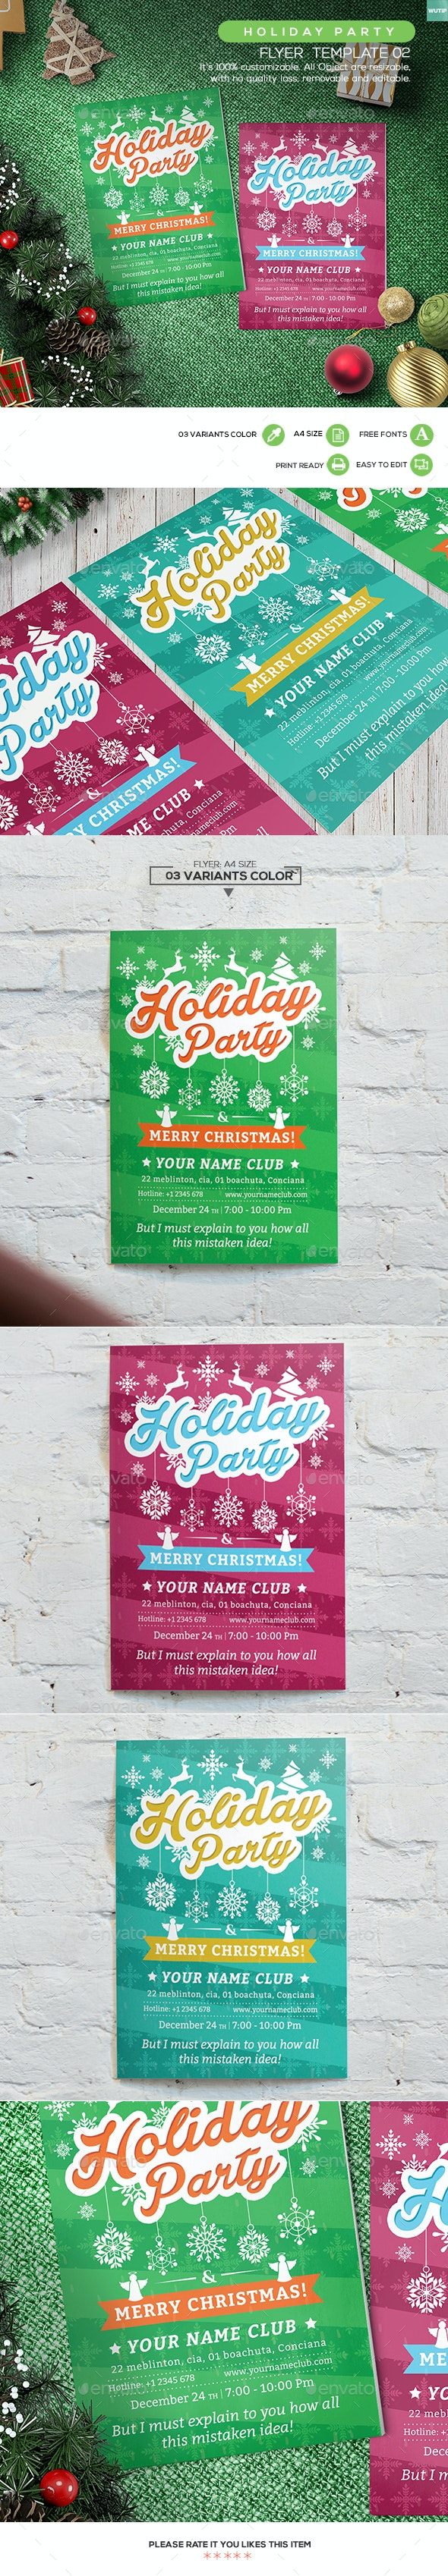 Holiday Party Flyer Template 02 - Holidays Events